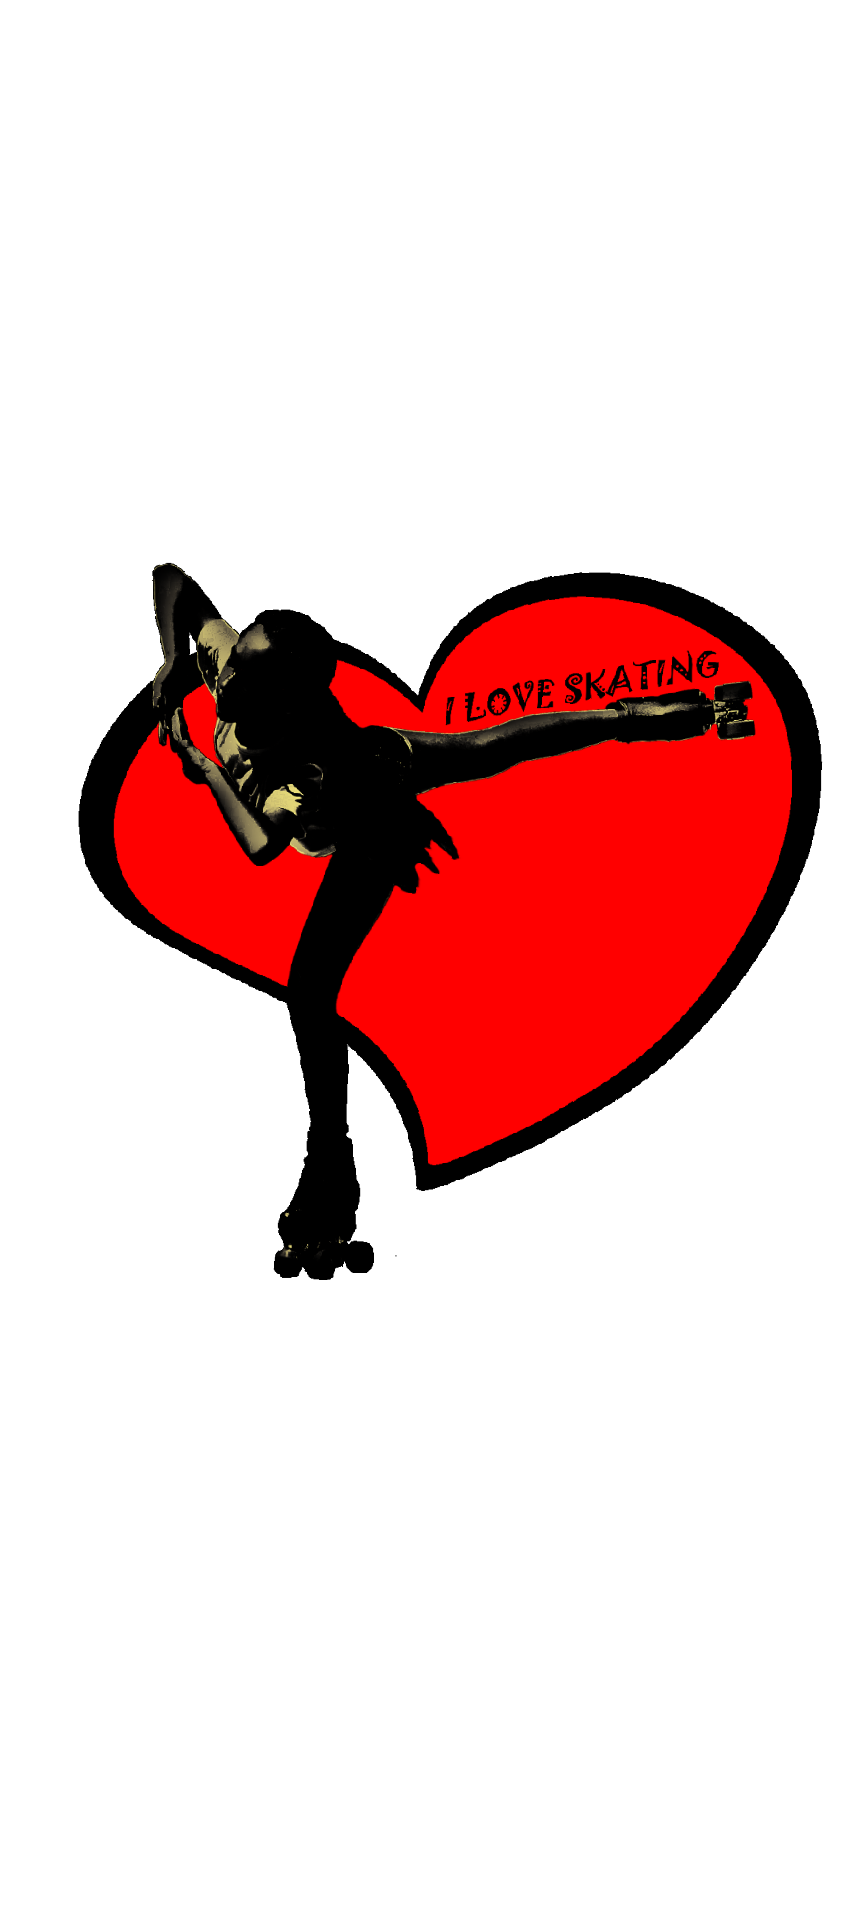 cover Skating in the red heart